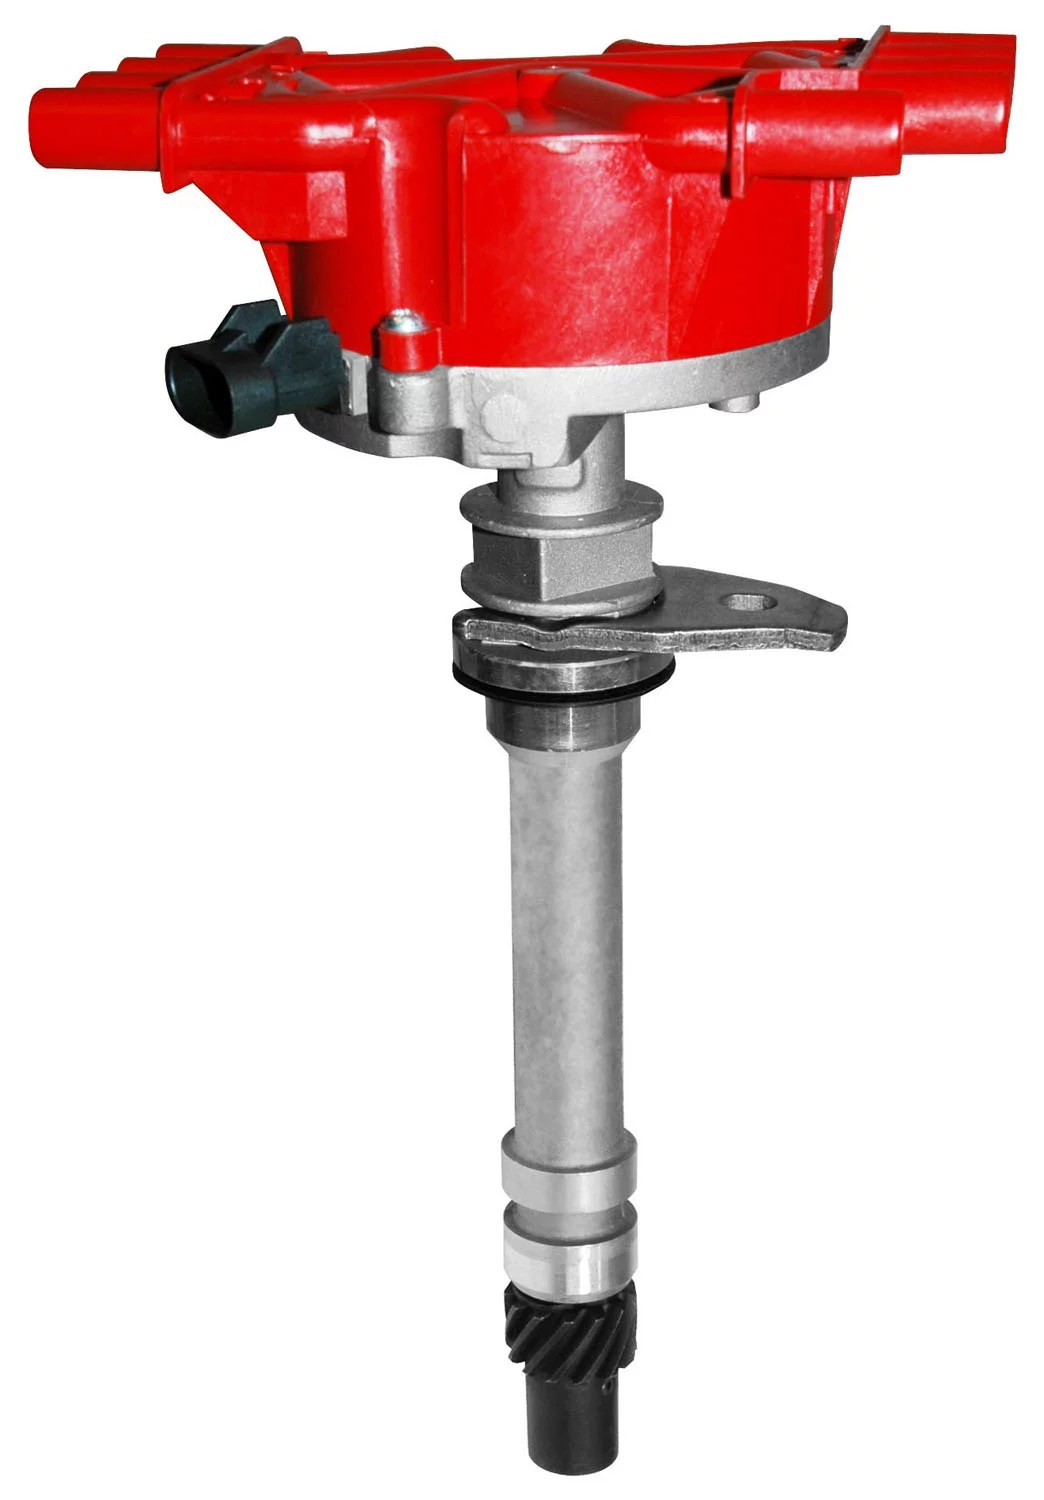 msd ignition 5592 distributor street fire for use with gm vortec engines without ignition control module magnetic trigger locked out timing  [ 2000 x 2000 Pixel ]